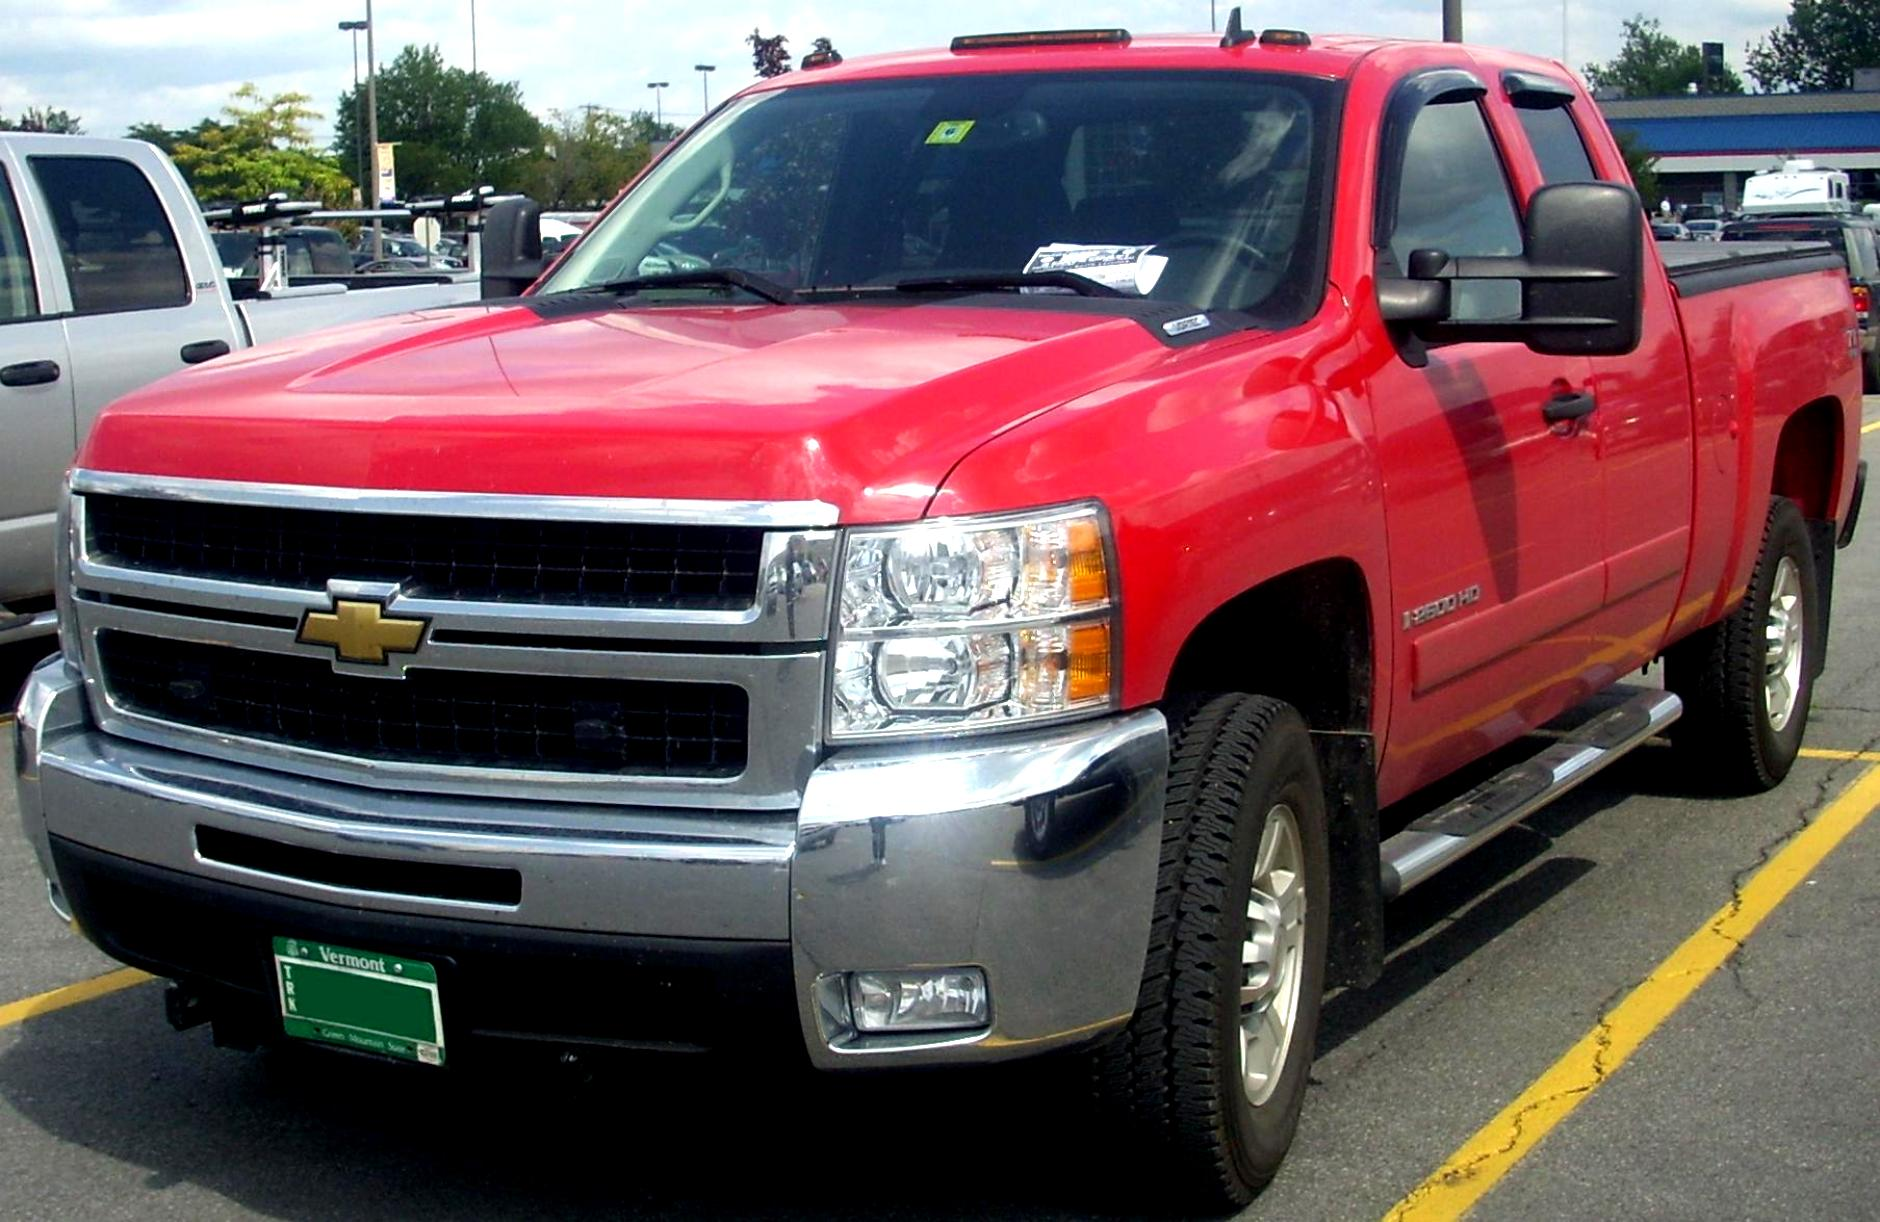 Chevrolet Silverado 2500HD Regular Cab 2008 #15